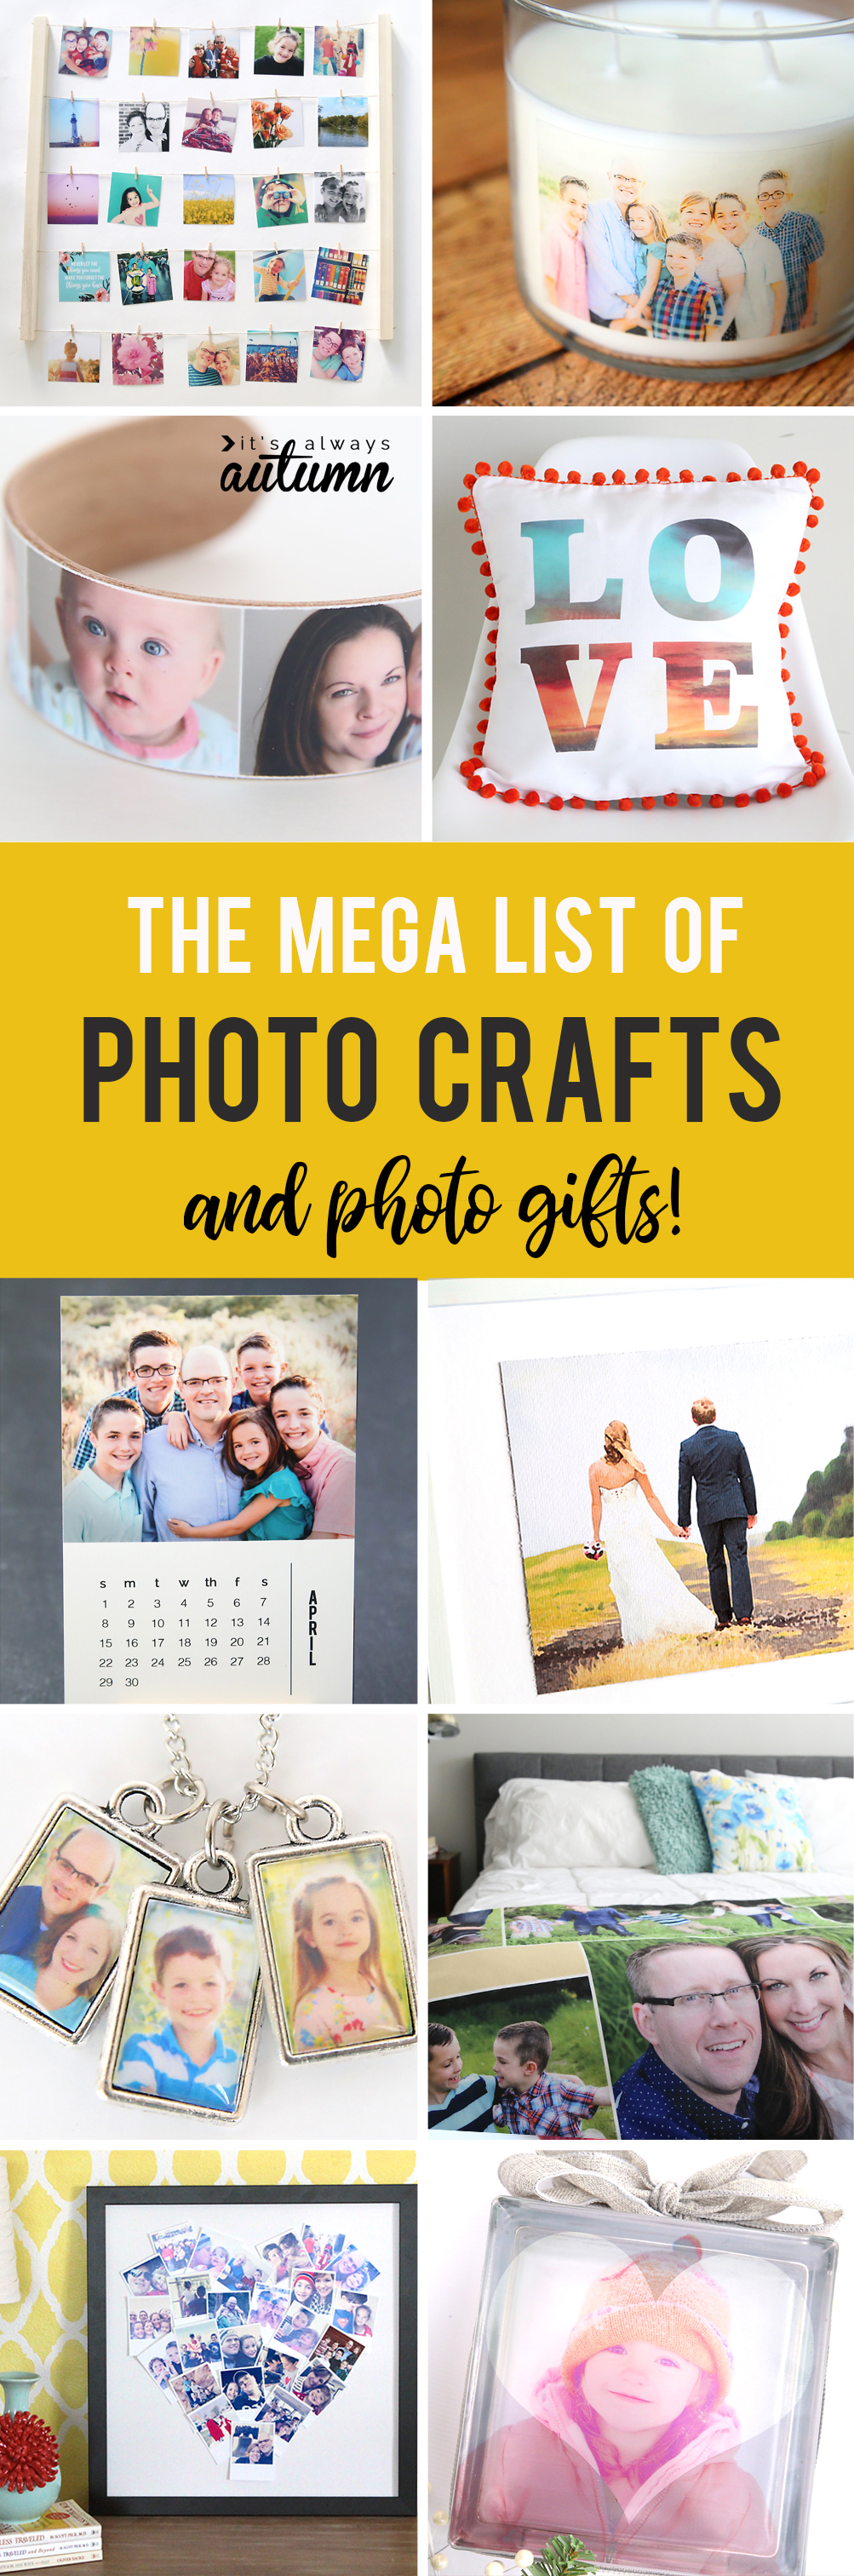 Collage of photo crafts and photo gifts